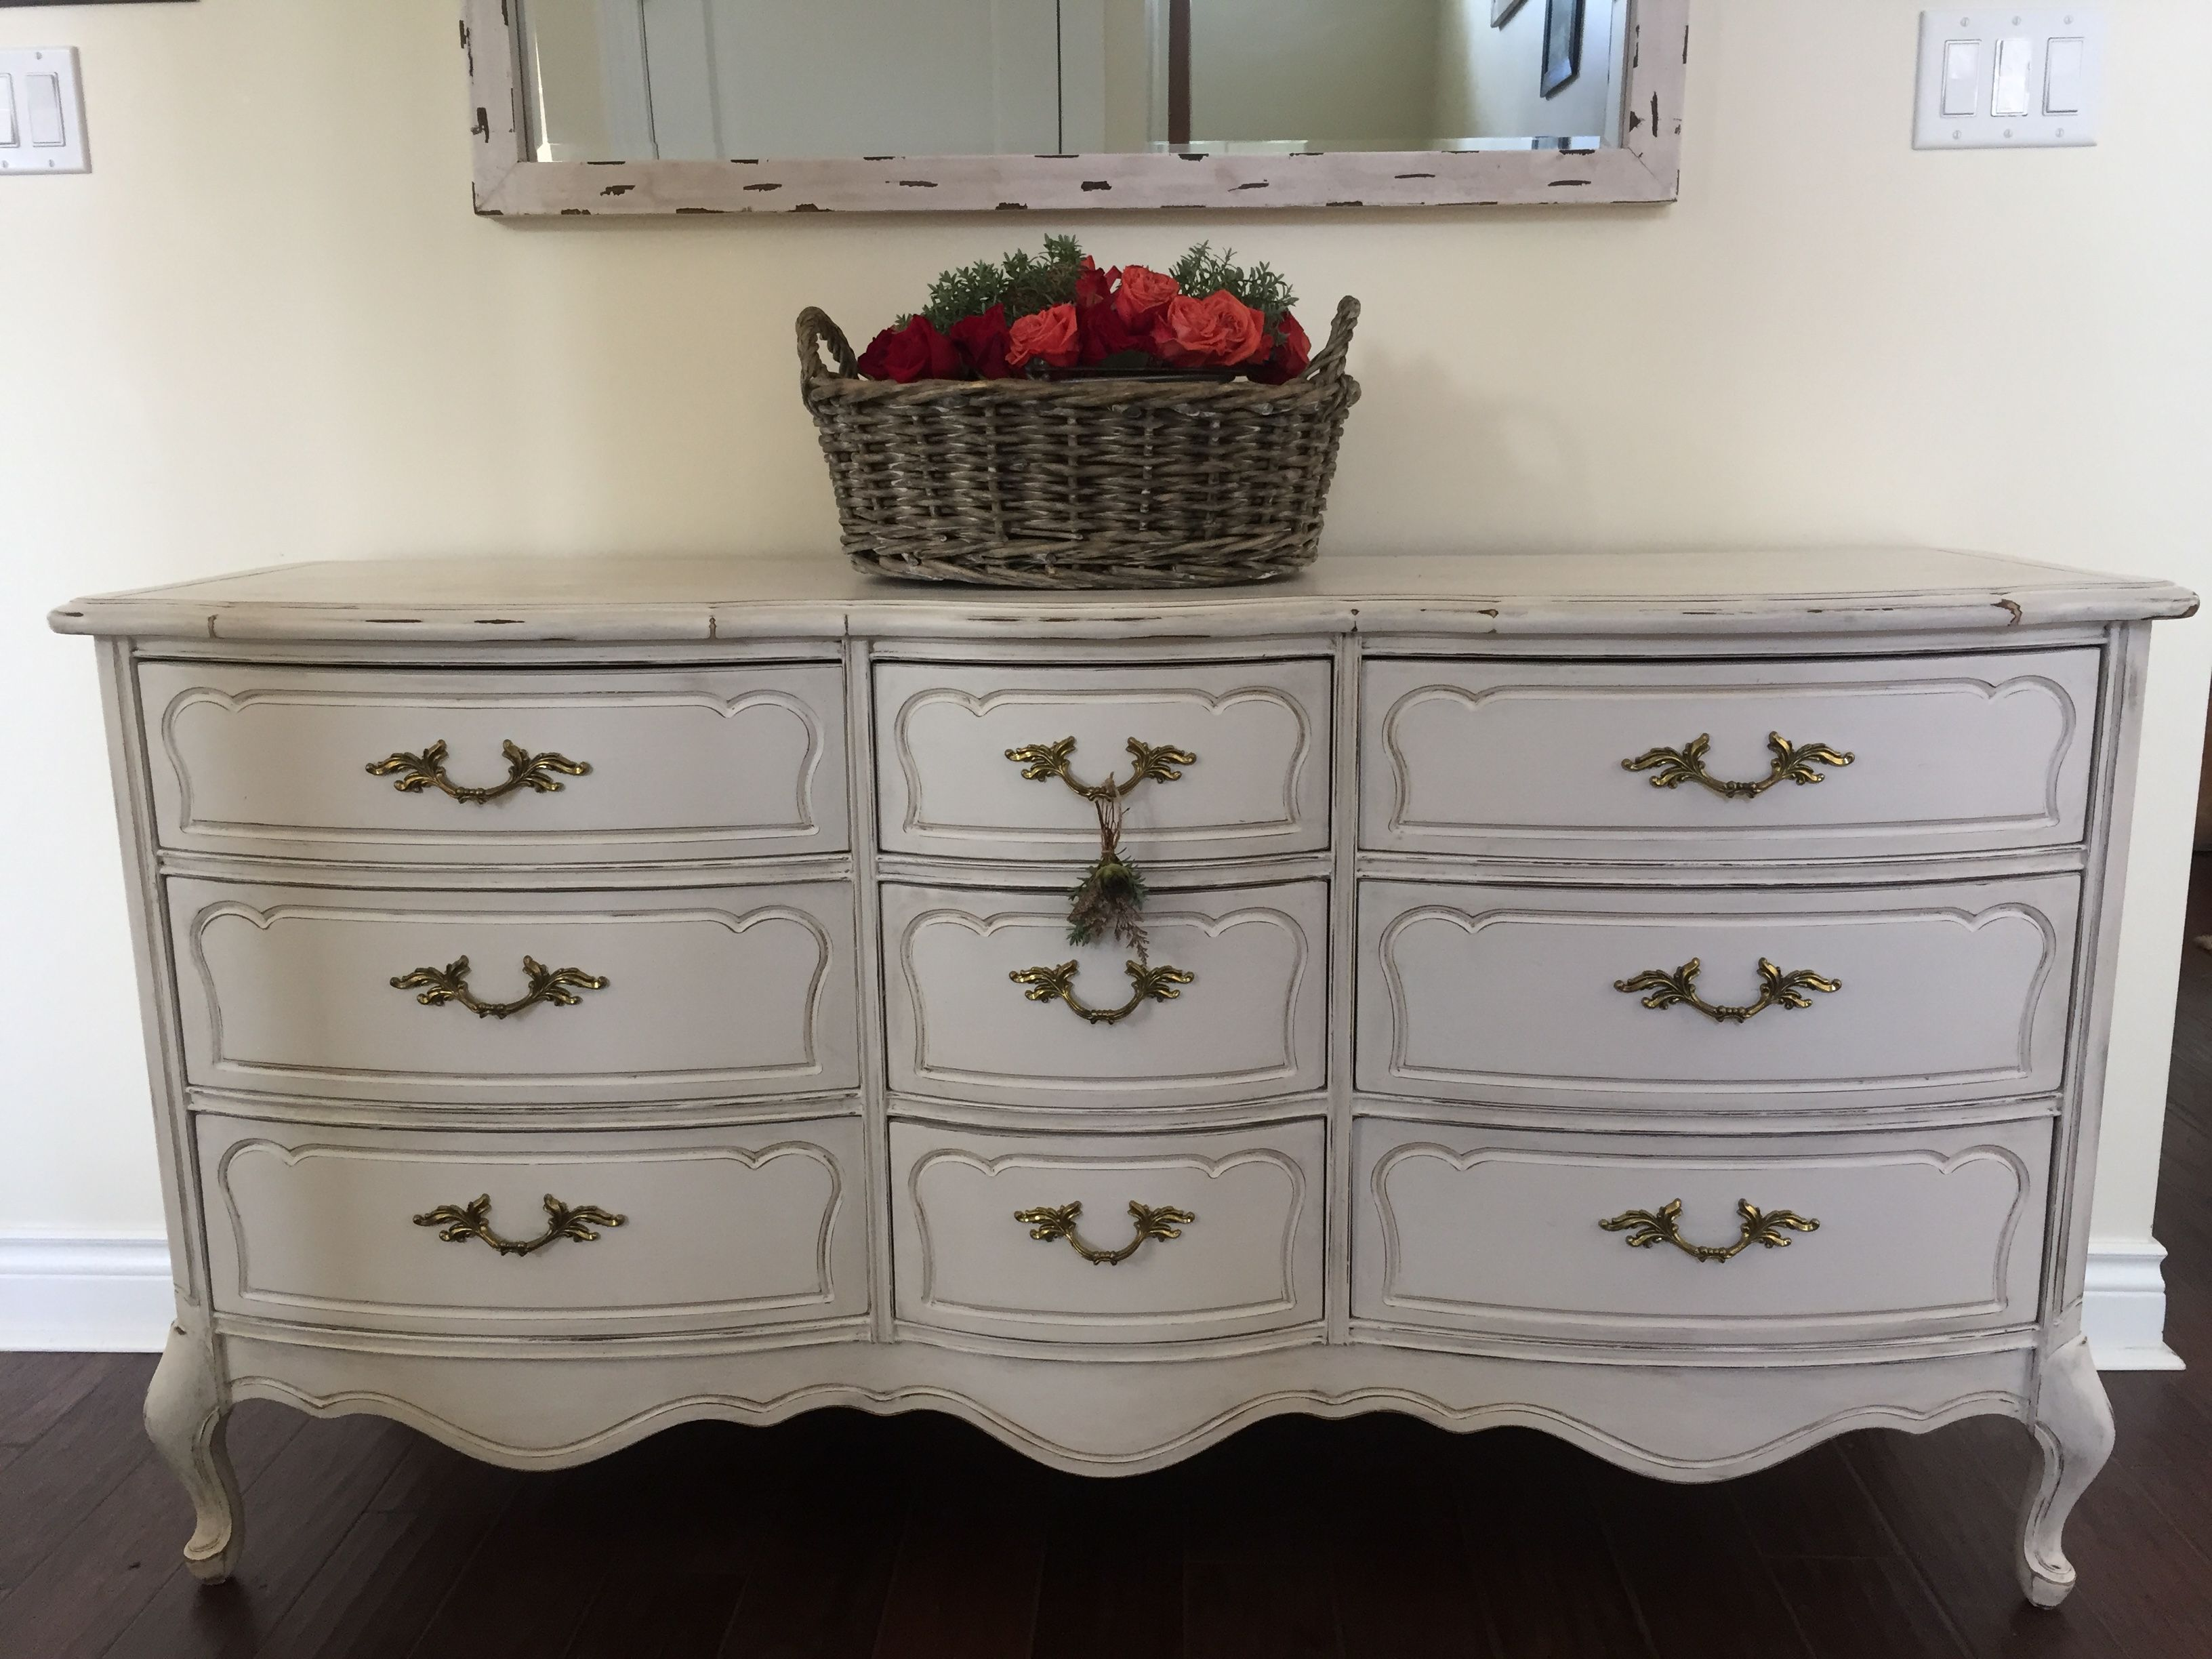 French Provincial dresser refinished in white with black